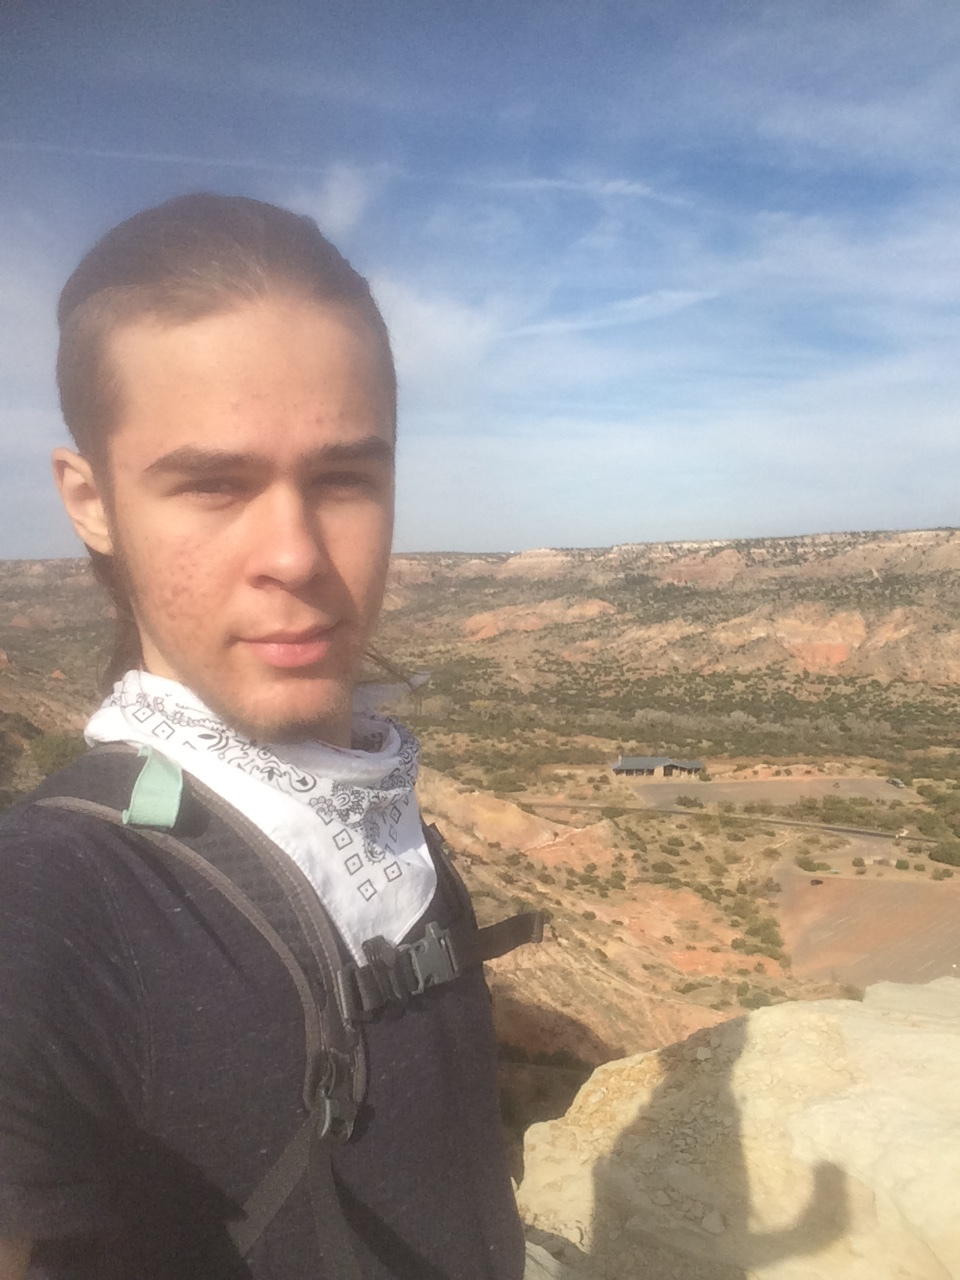 Hiking in Palo Duro Canyon State Park near Amarillo, TX